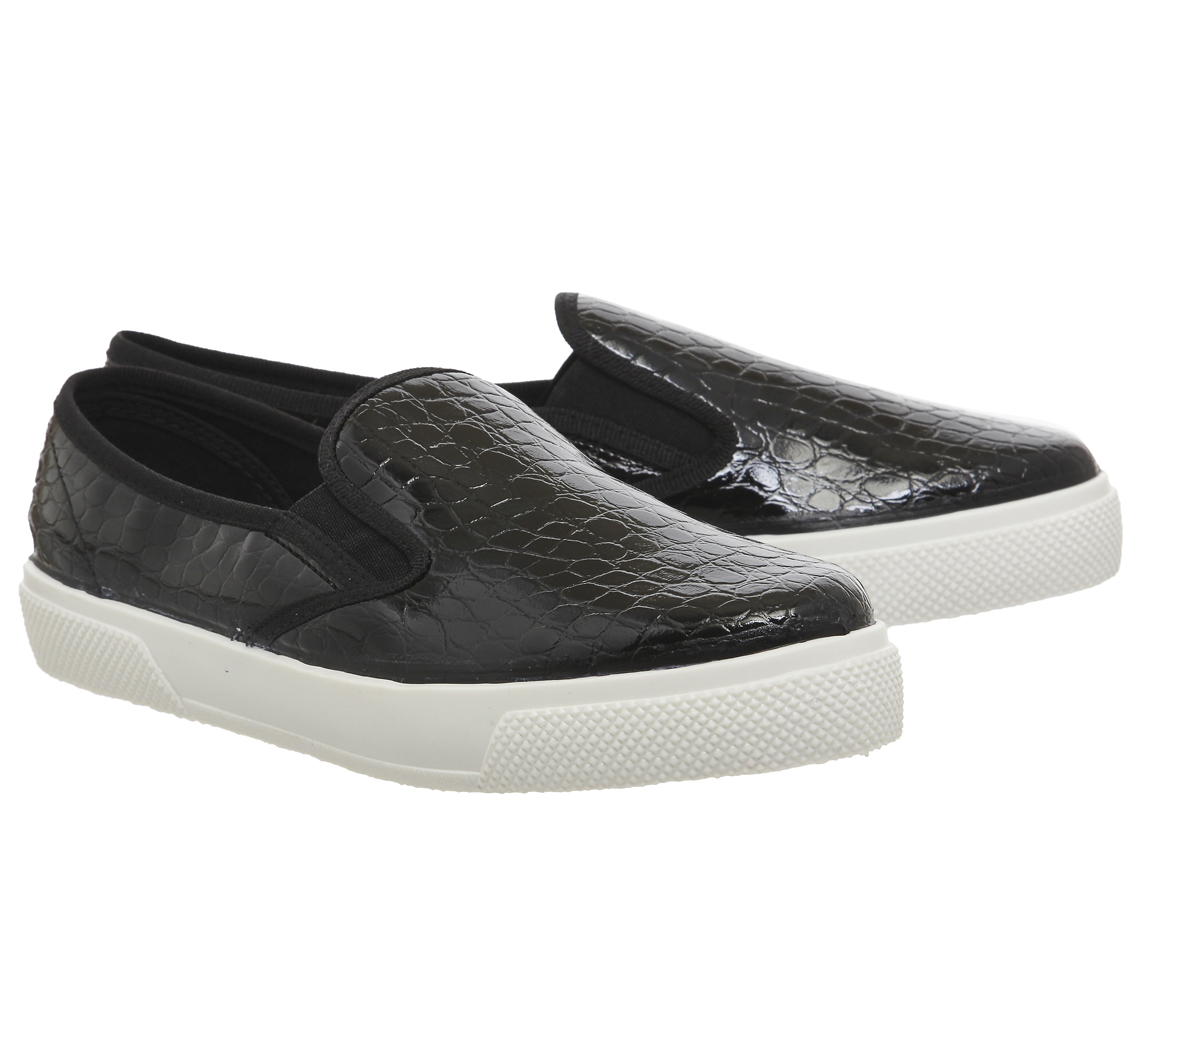 Office Kicker Slip On Trainers In Black | Lyst